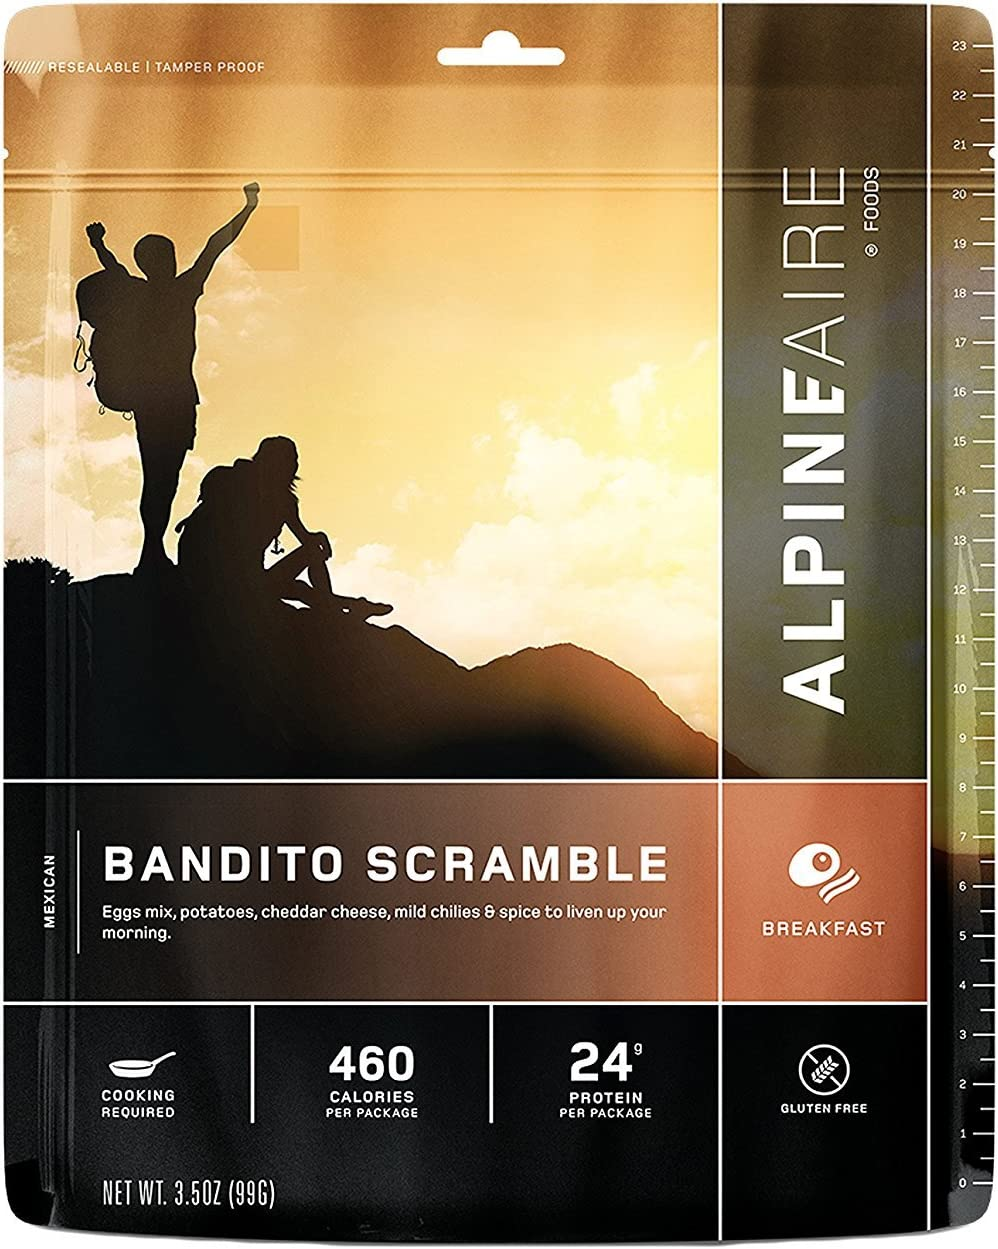 Alpine Bandito Egg Scramble Freeze Dried/Dehydrated Breakfast Meal Pouch, add Water and Cook in pan, 2-Servings per Pouch, 12g of Protein per Serving